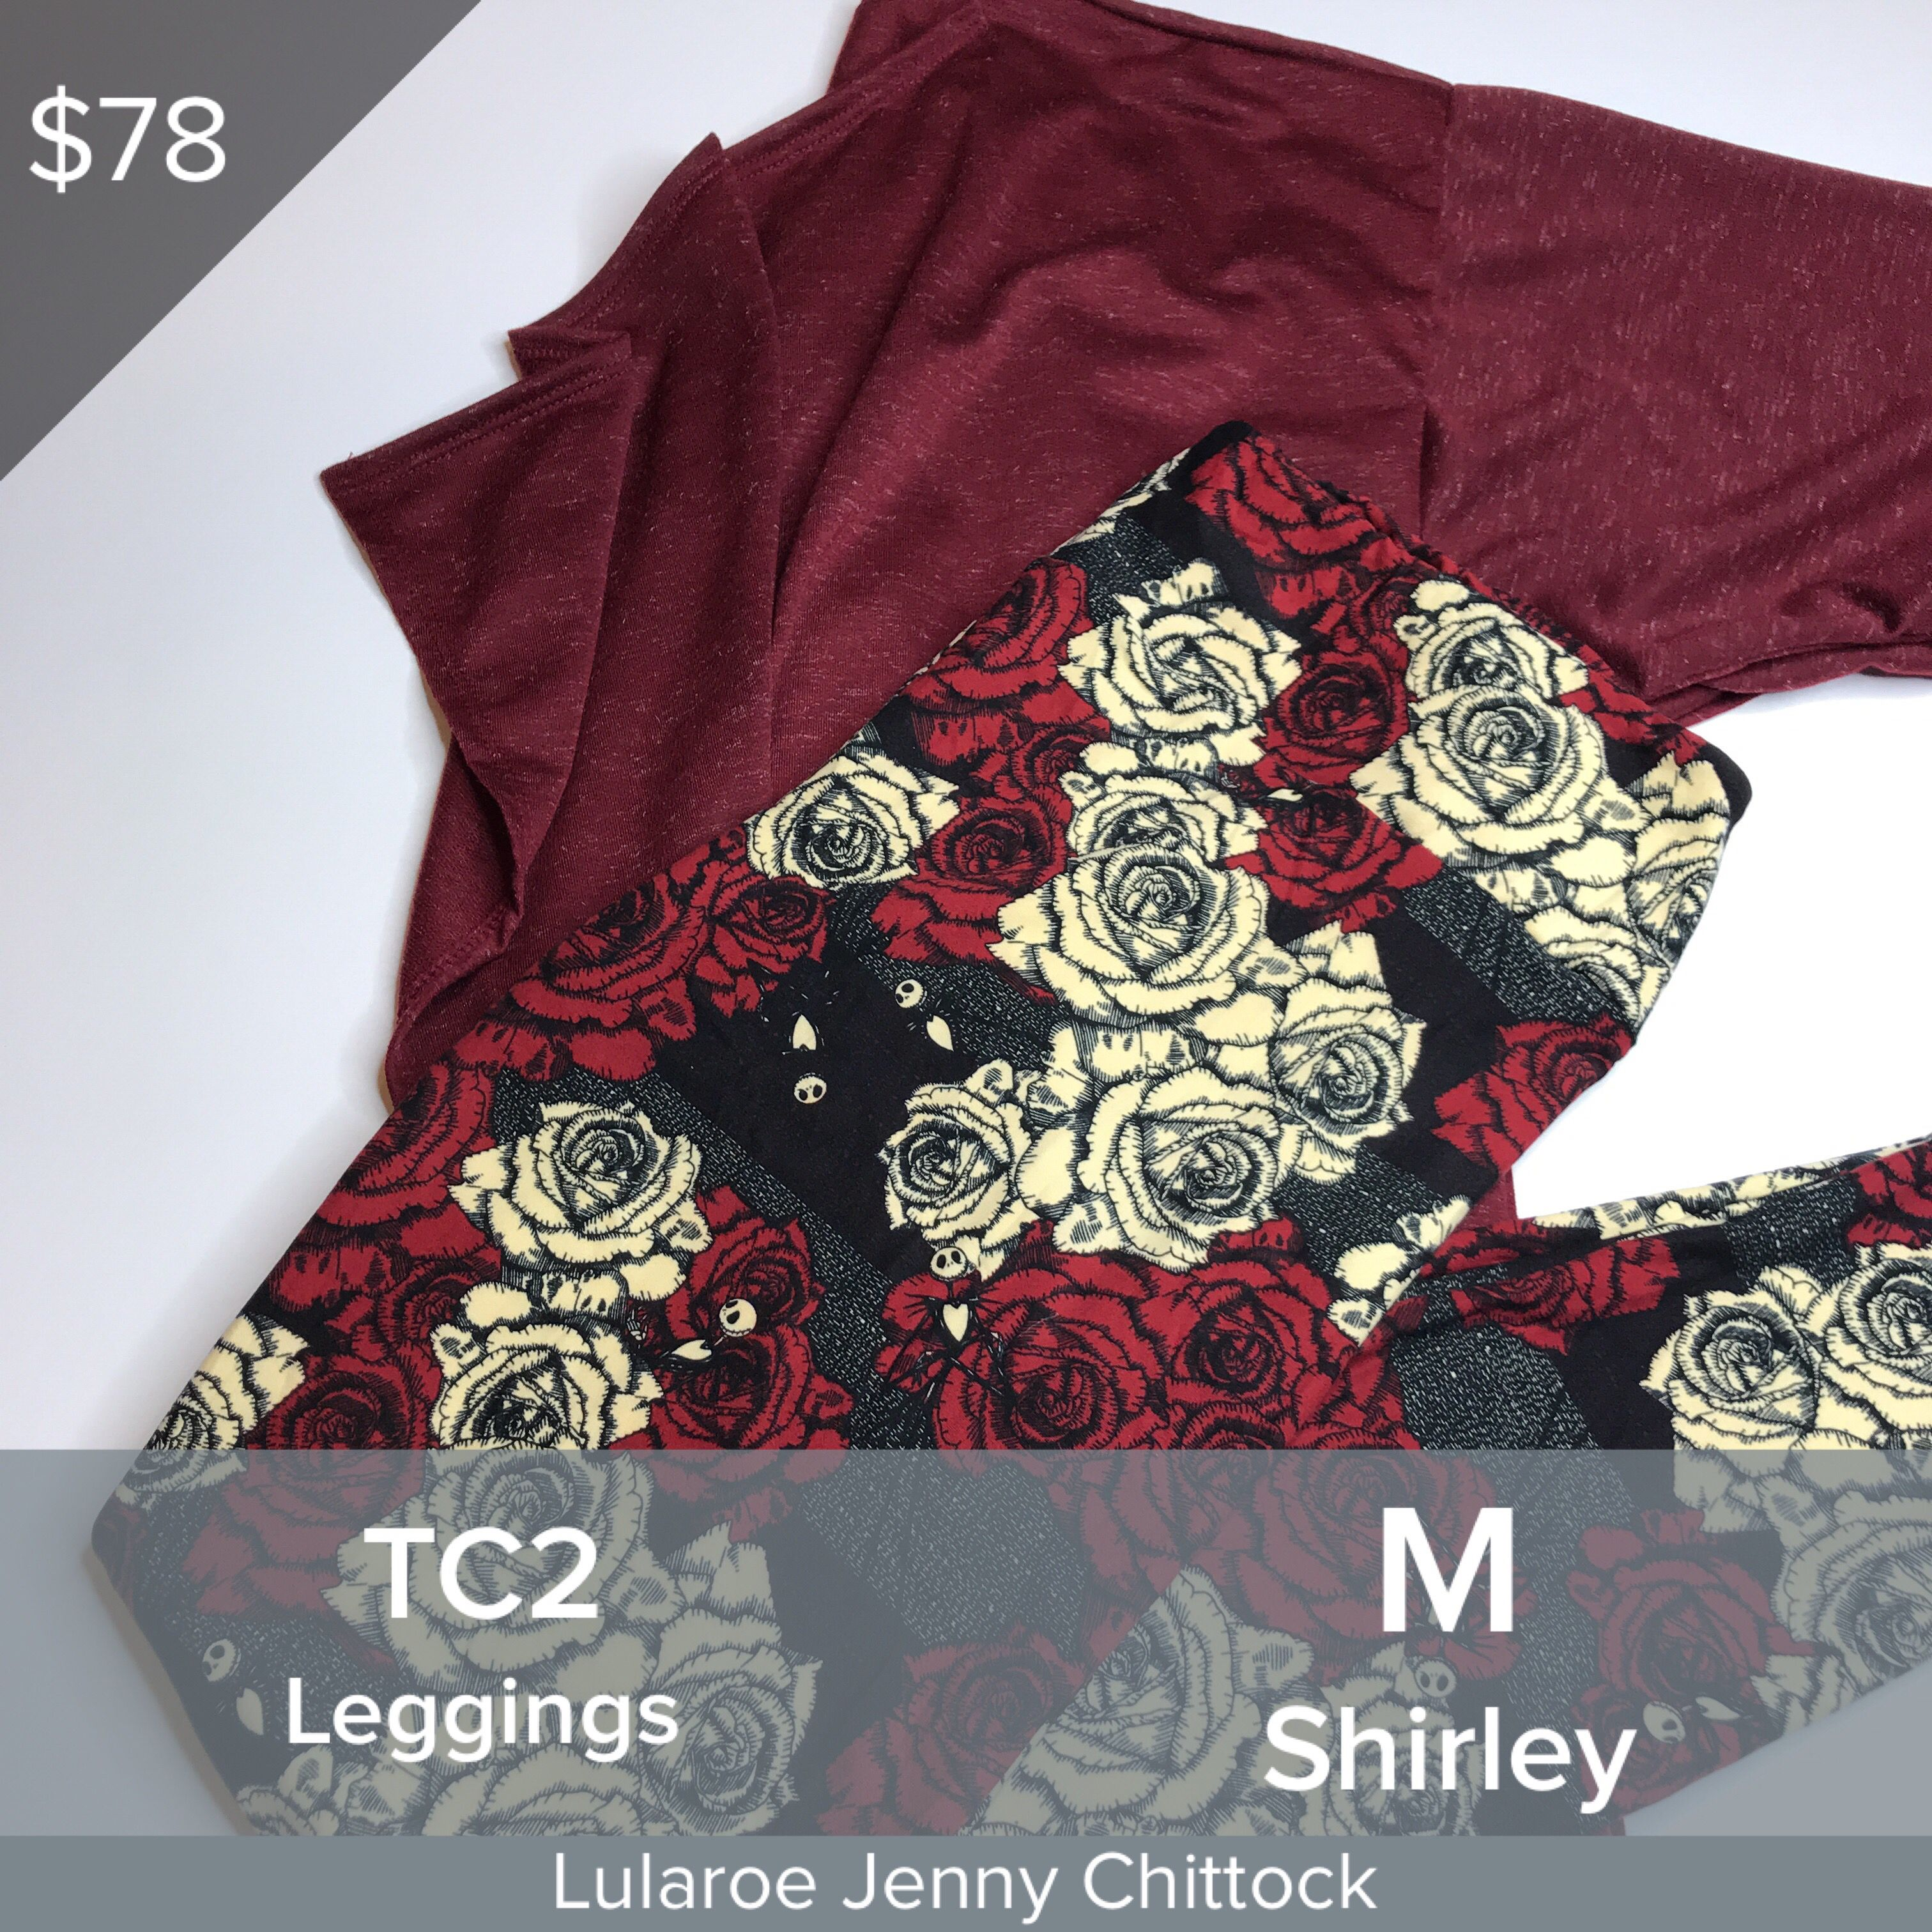 b6aeec697435c4 LuLaRoe jack and sally leggings, paired with a Shirley. Make it a fun  Halloween